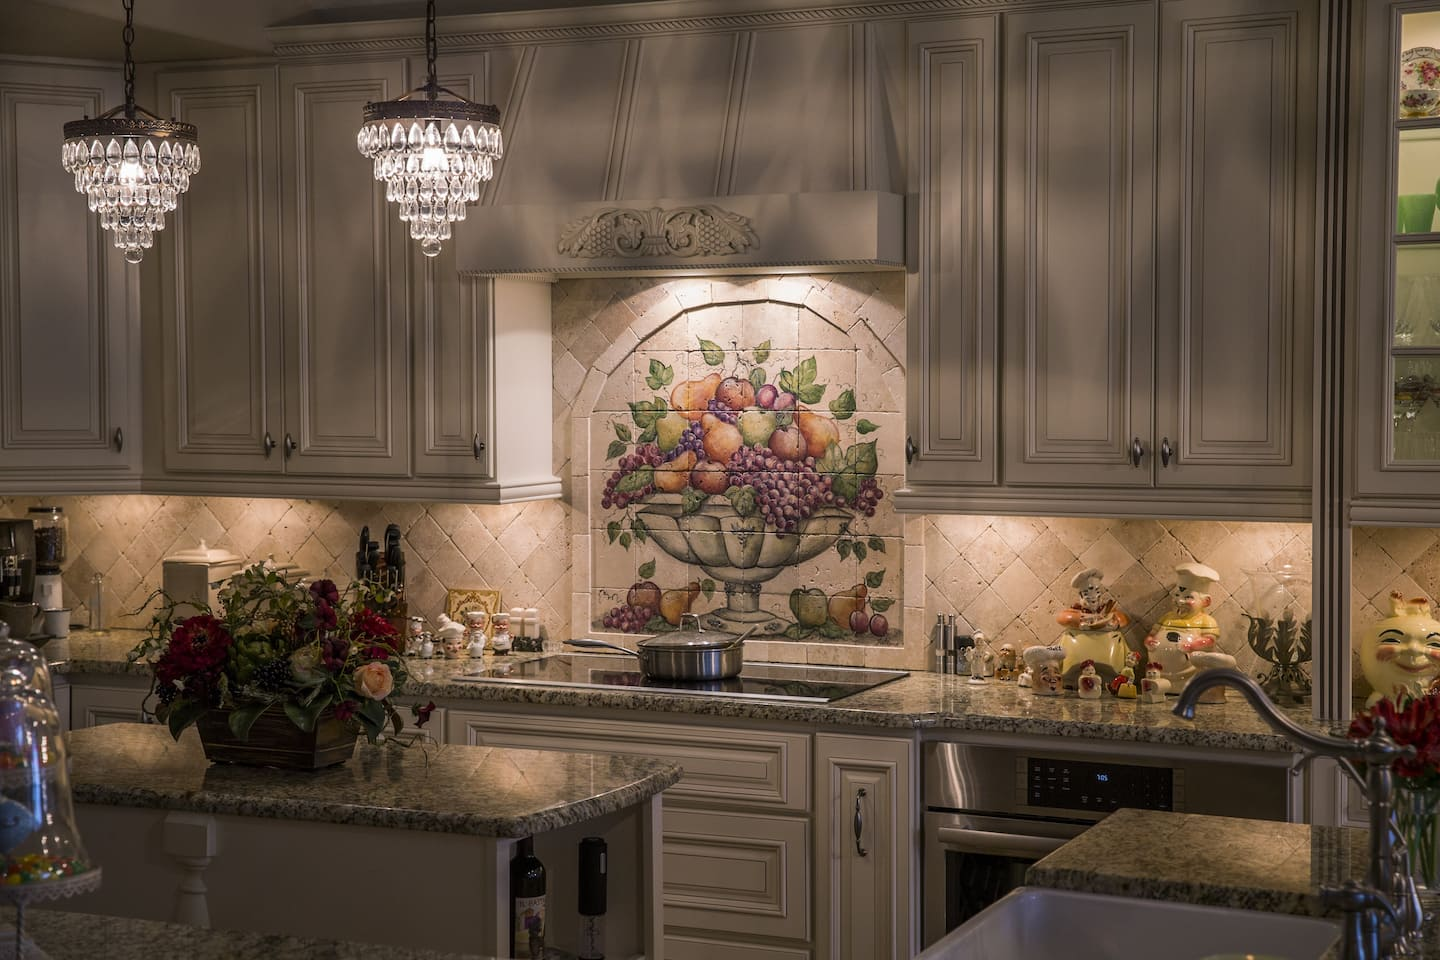 Susan Bartlett From Lutz, Florida, Uses Task Lighting To Highlight Her  Kitchen Decor. (Photo By Mike Fender) View Details